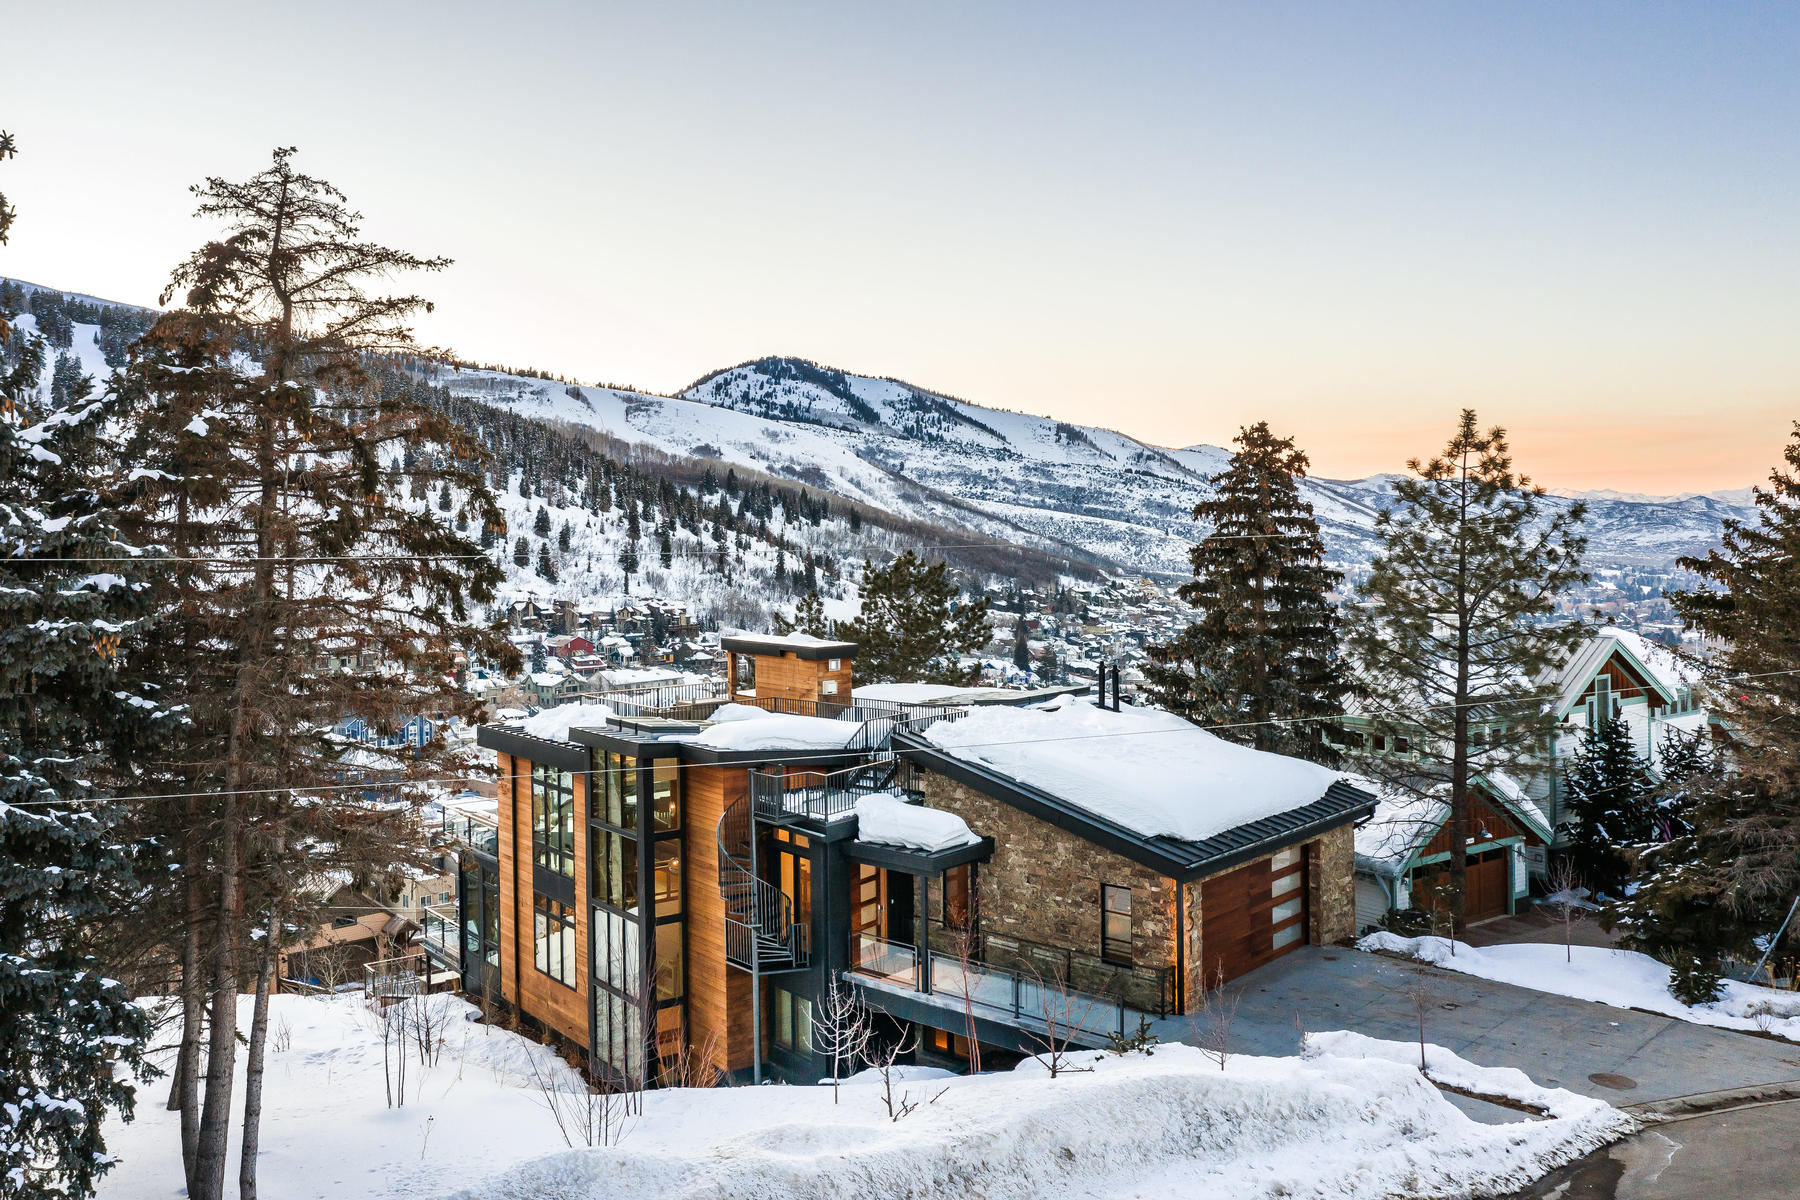 Single Family Homes for Active at Architectural Wonder In Park City's Old Town 331 McHenry Ave Park City, Utah 84060 United States